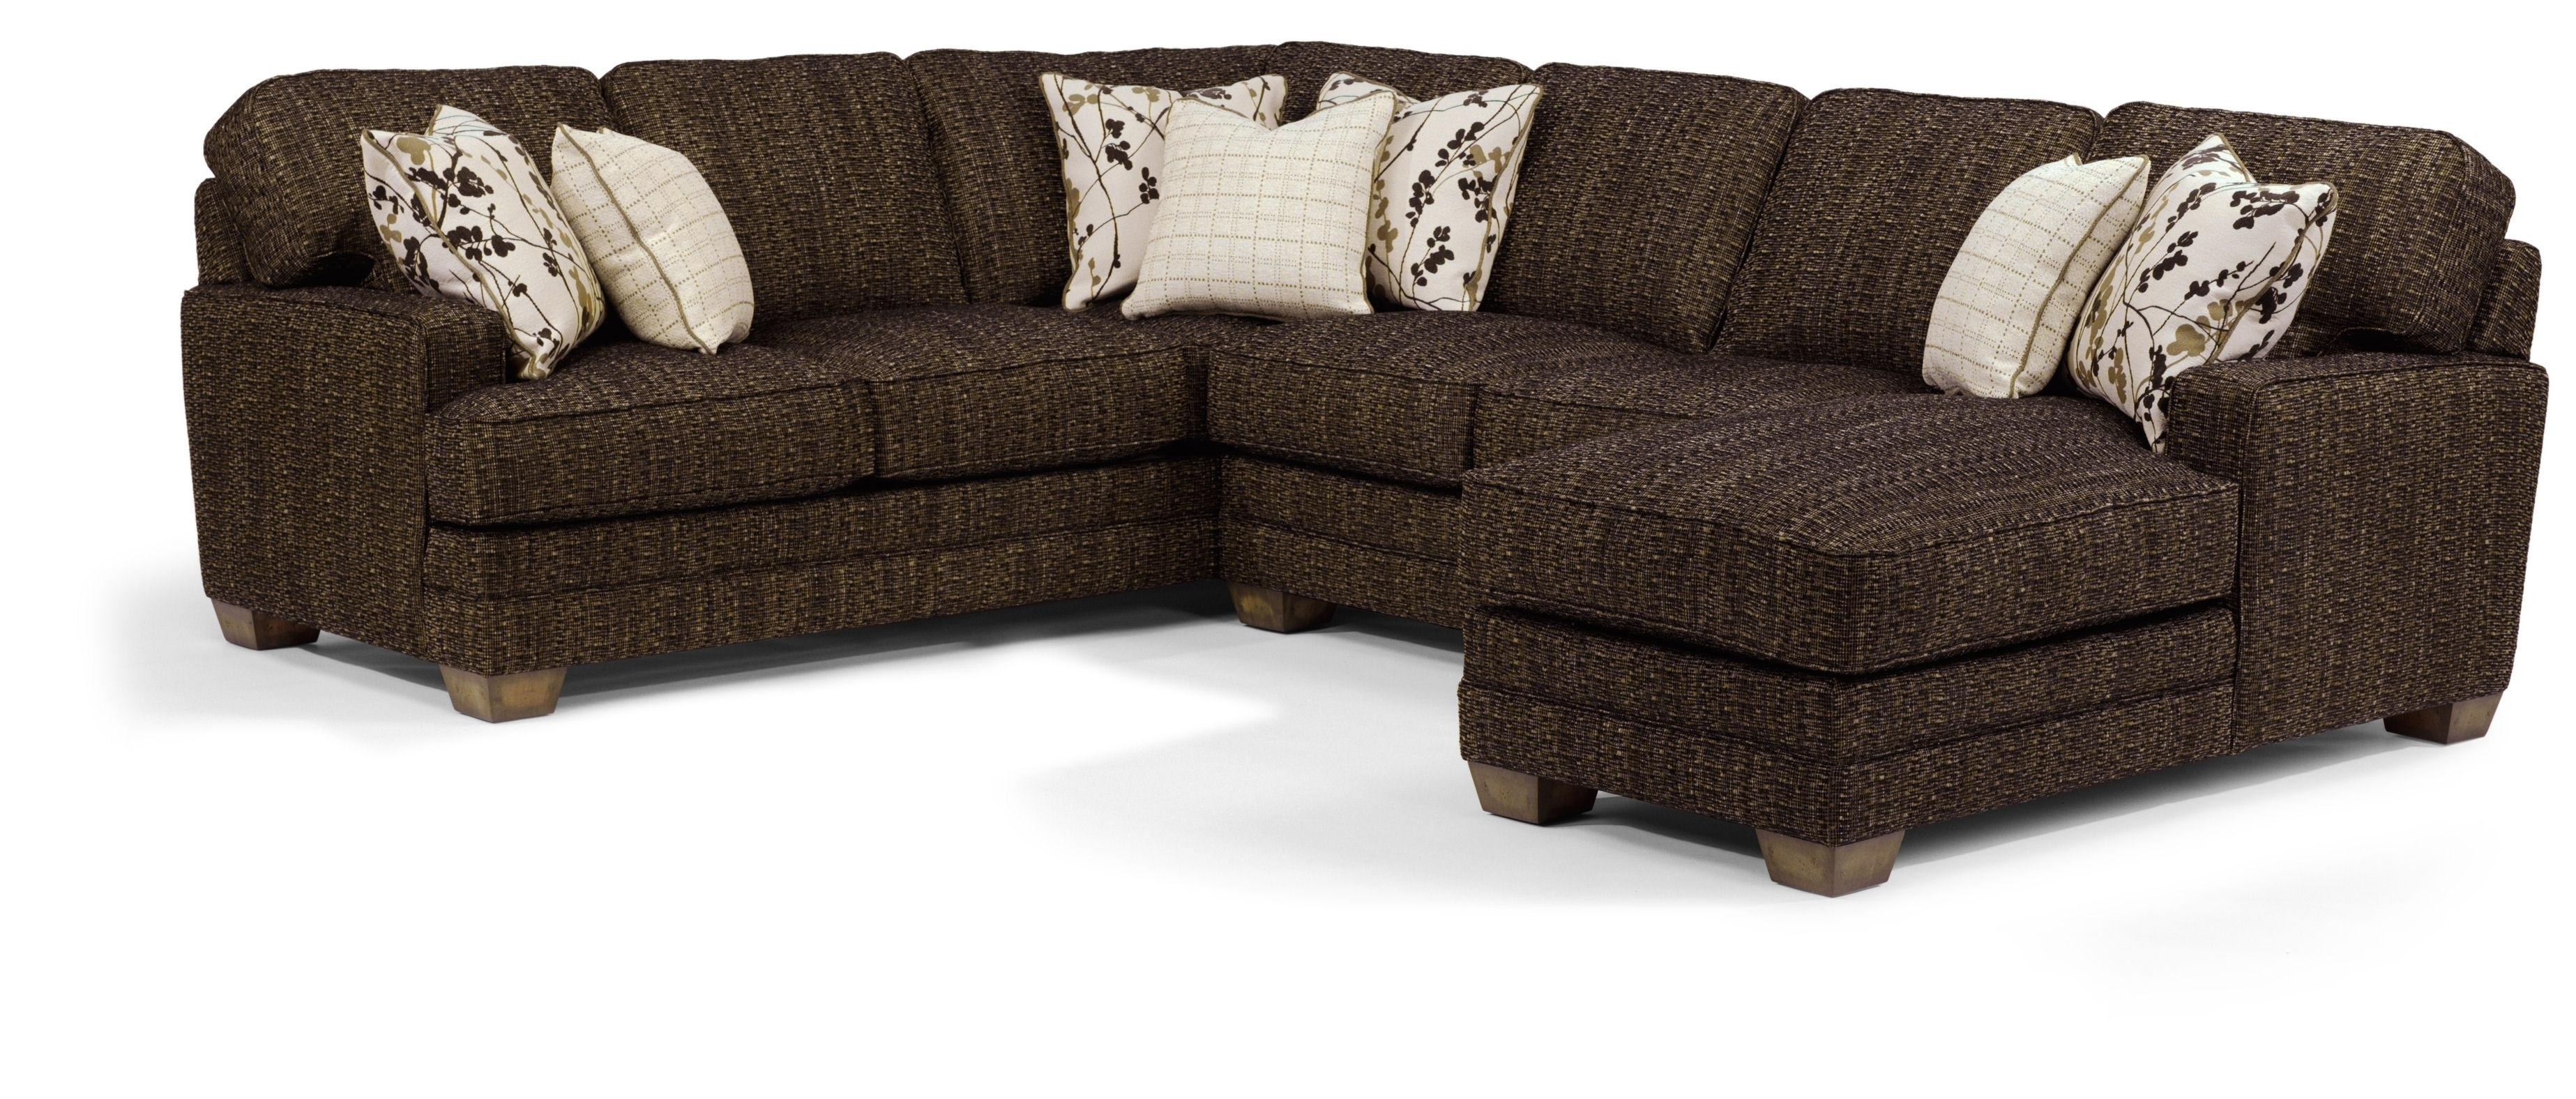 Flexsteel That's My Style <B>Customizable</b> 3 Piece Sectional Sofa regarding Delano 2 Piece Sectionals With Laf Oversized Chaise (Image 19 of 30)